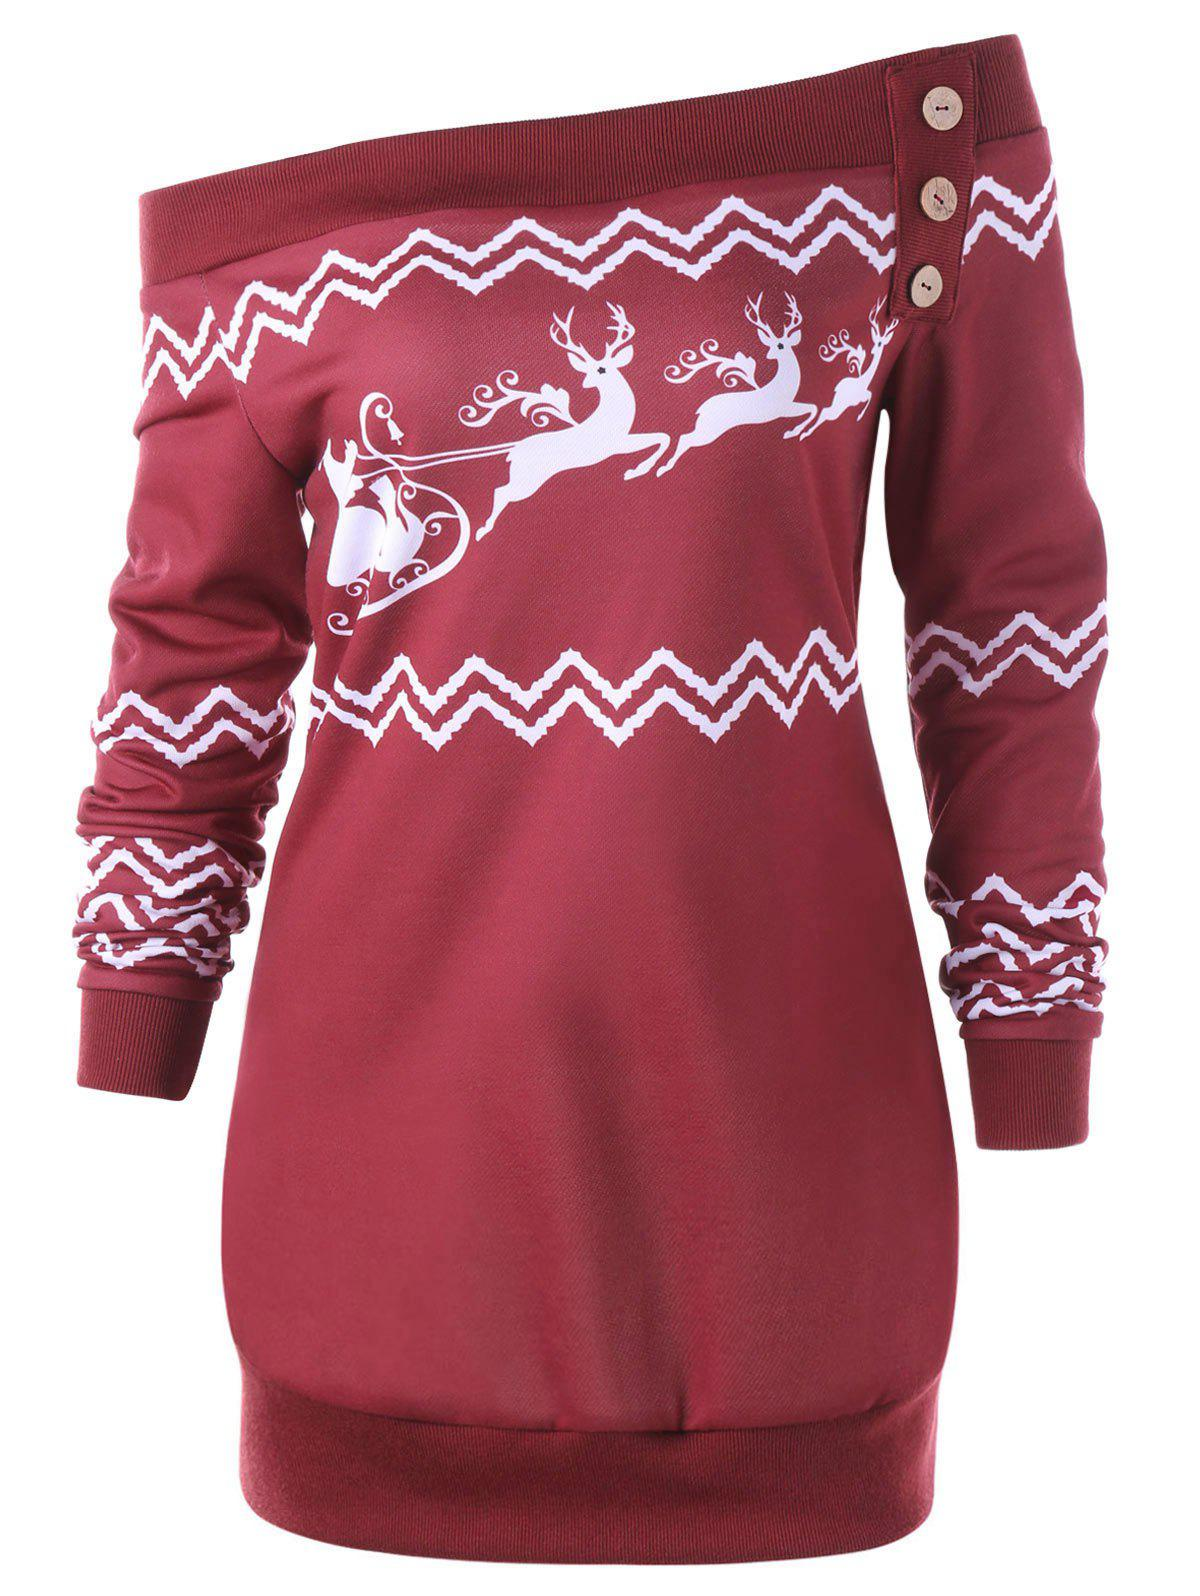 Plus Size Pullover Christmas Zigzag Deer Skew Neck SweatshirtWOMEN<br><br>Size: 5XL; Color: RED; Material: Polyester,Spandex; Shirt Length: Long; Sleeve Length: Full; Style: Casual; Pattern Style: Character,Zig Zag(Chevron); Embellishment: Button; Season: Fall,Spring,Winter; Weight: 0.3500kg; Package Contents: 1 x Sweatshirt;